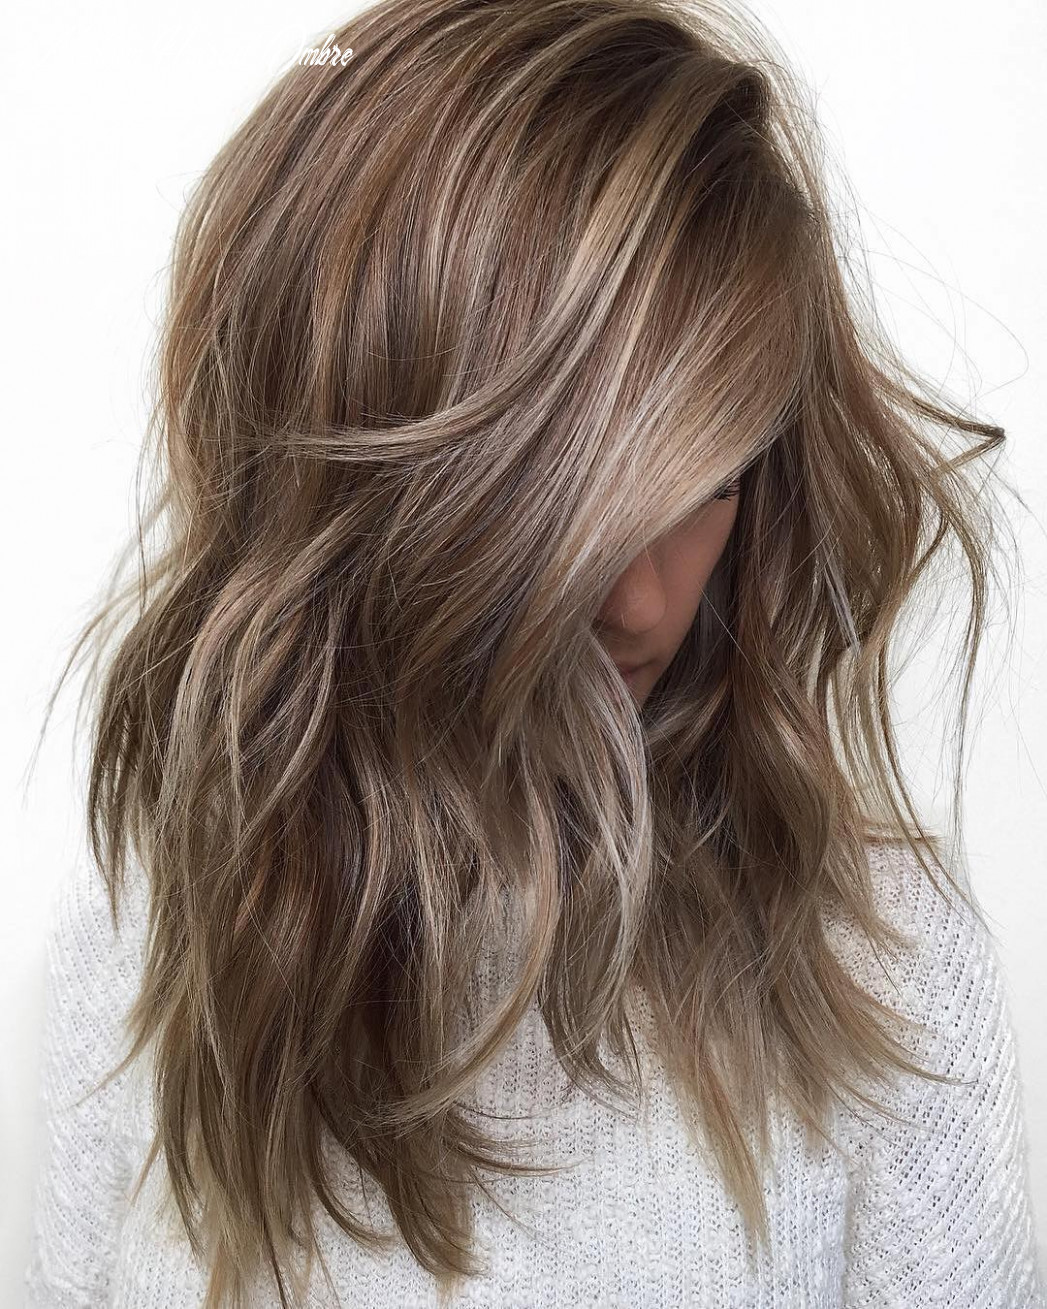 Balayage ombre hair styles for shoulder length hair nicestyles medium haircut ombre